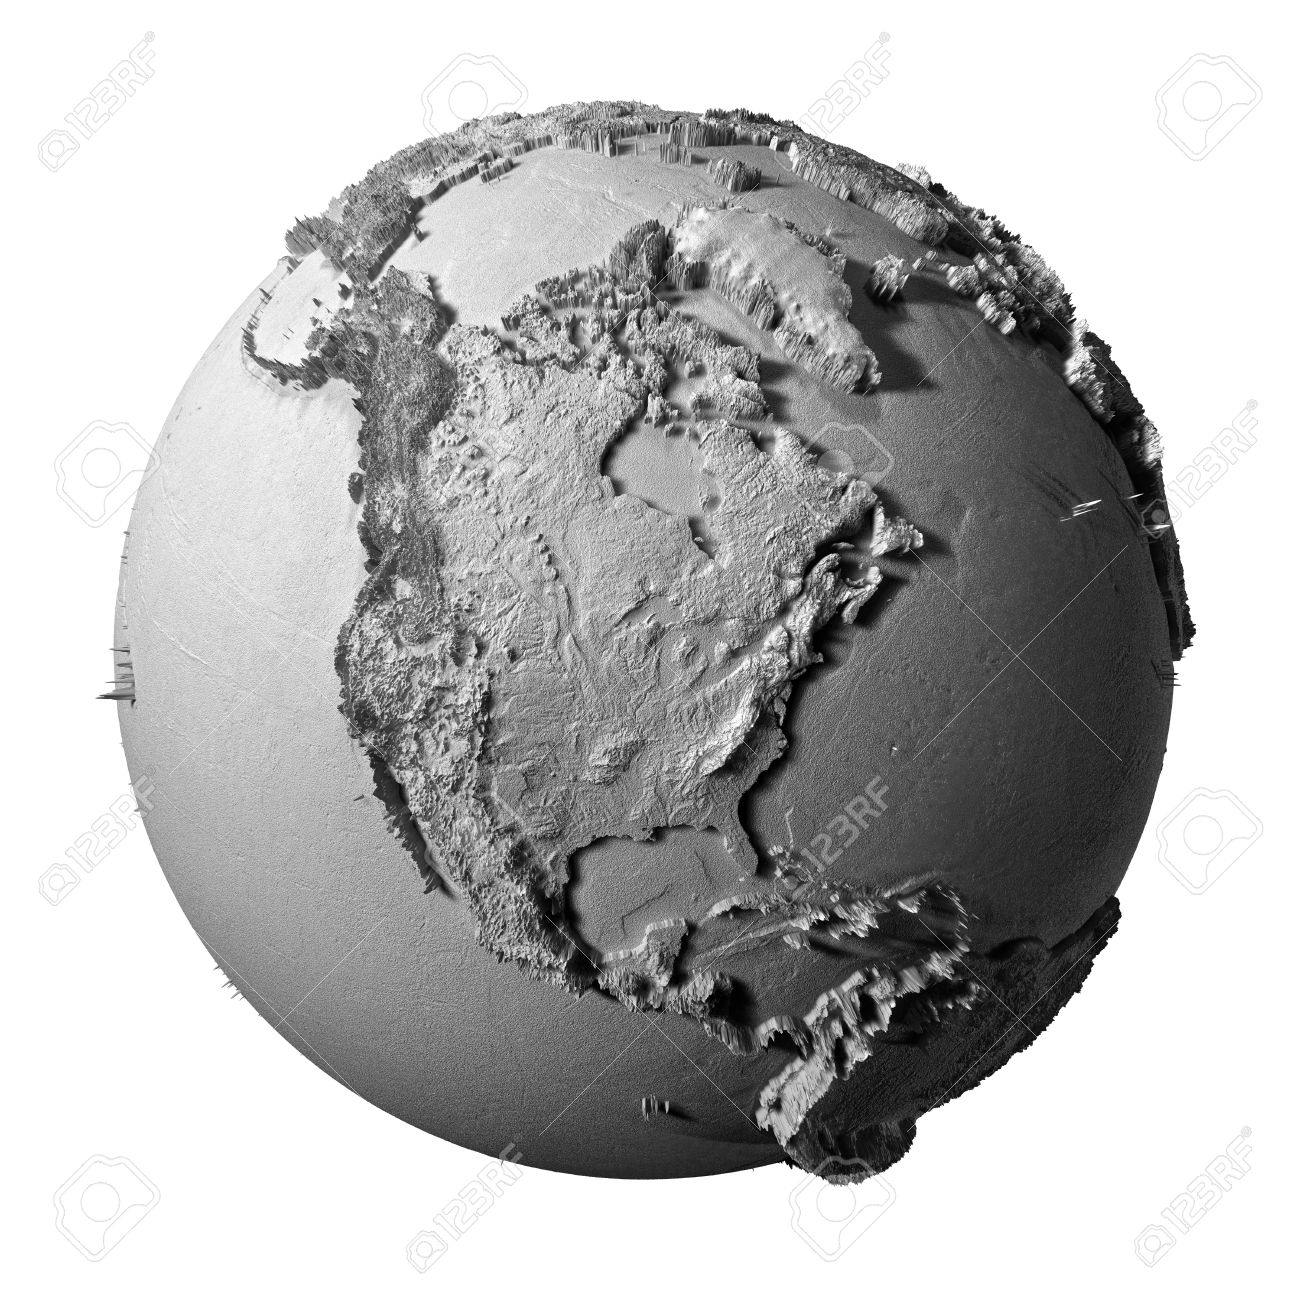 Realistic model of planet earth isolated on white background realistic model of planet earth isolated on white background north america 3d illustration stock sciox Gallery